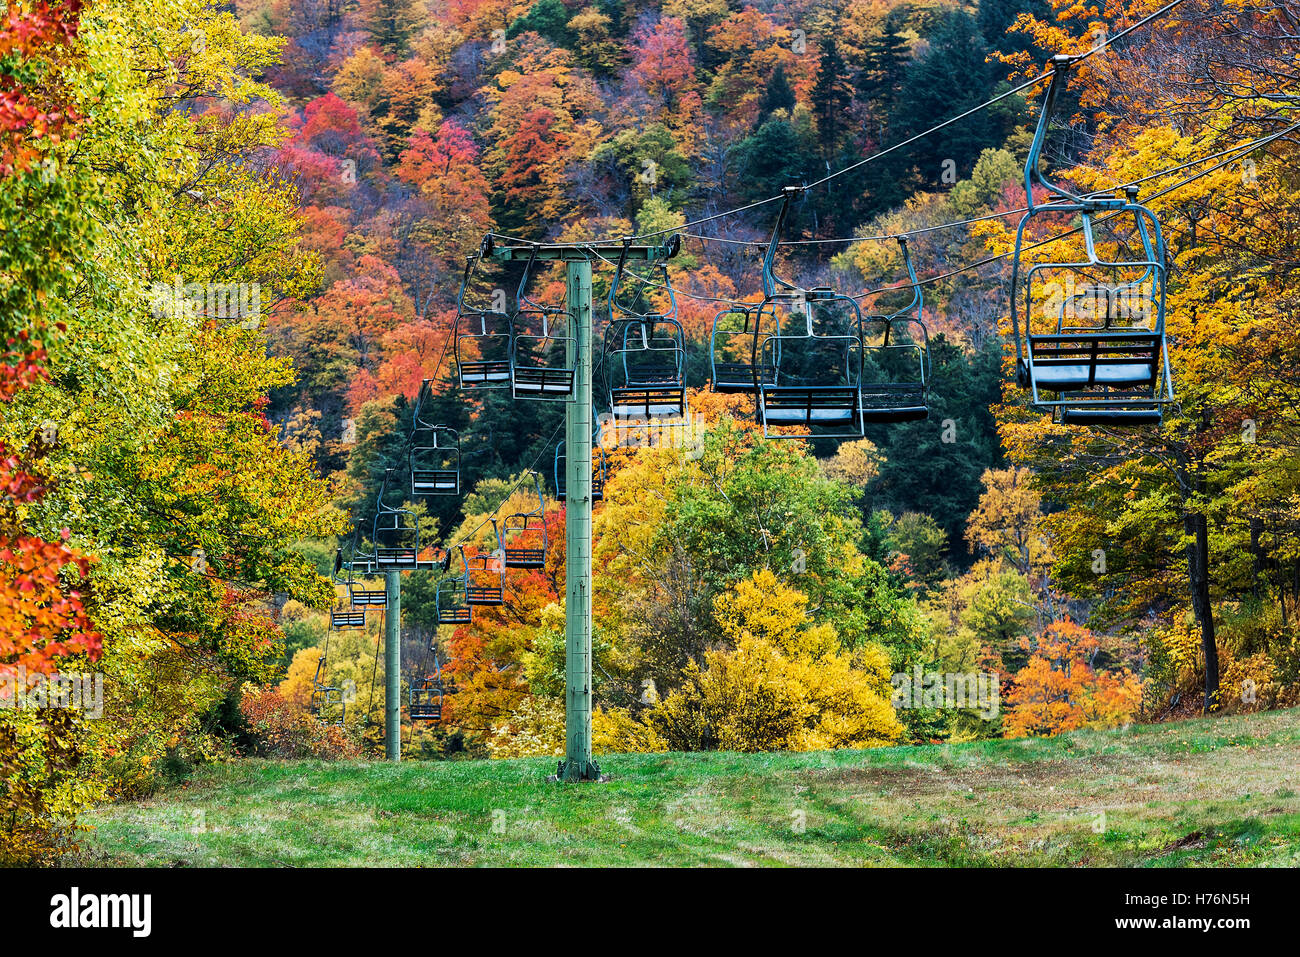 Mad River Glen Ski Resort in autumn, Vermont, USA. - Stock Image